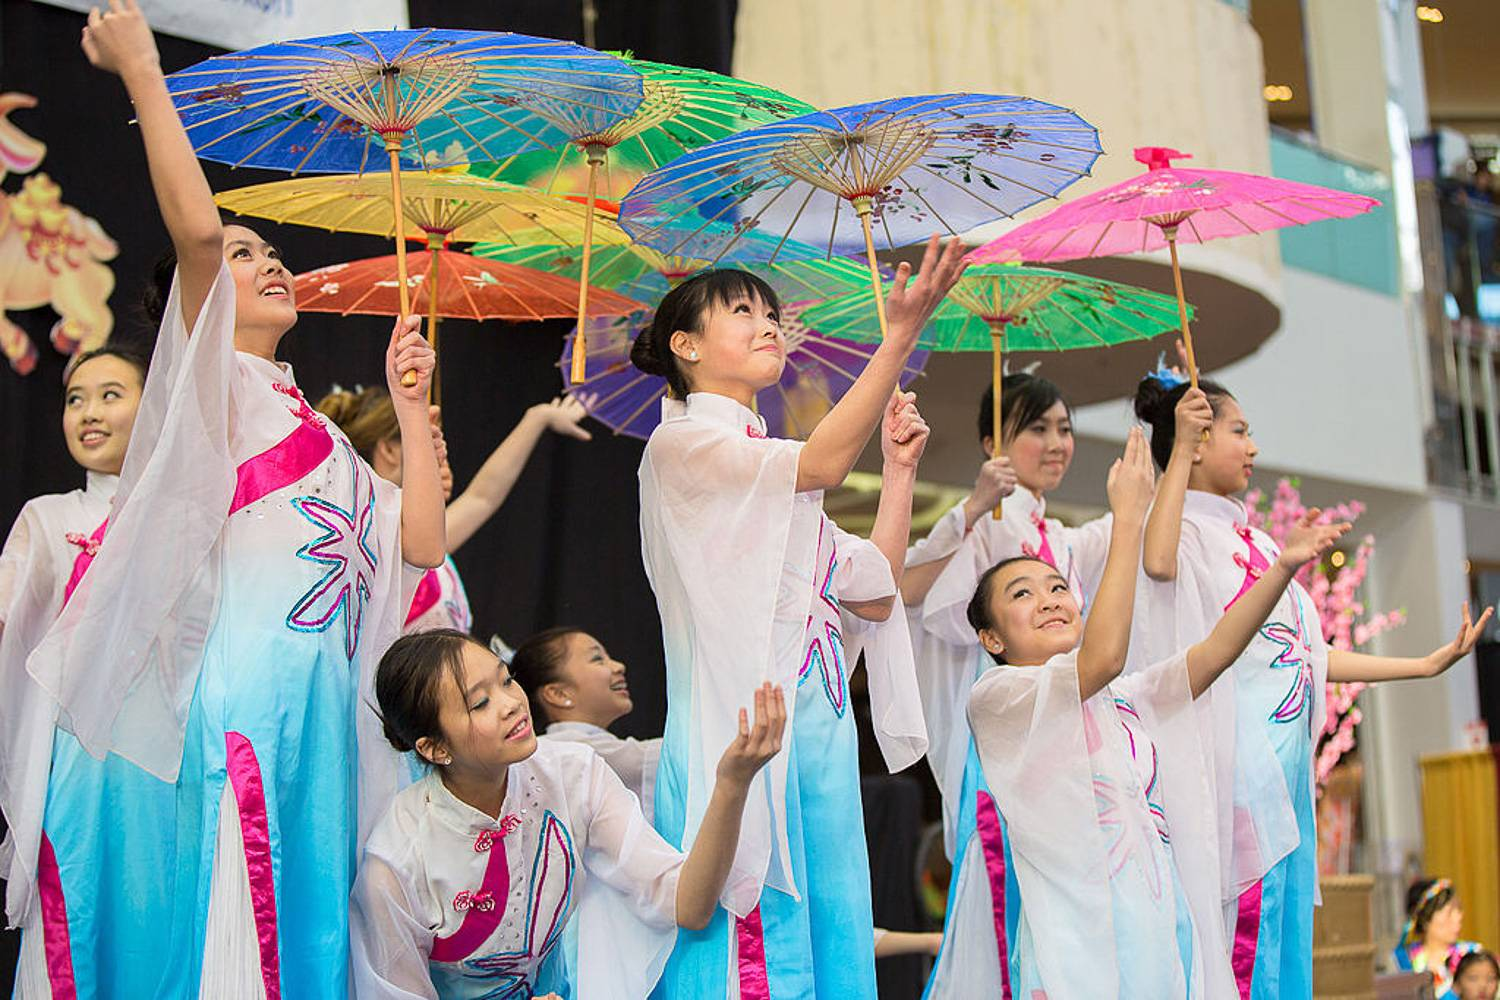 Image of Asian women in traditional dress with parasols dancing